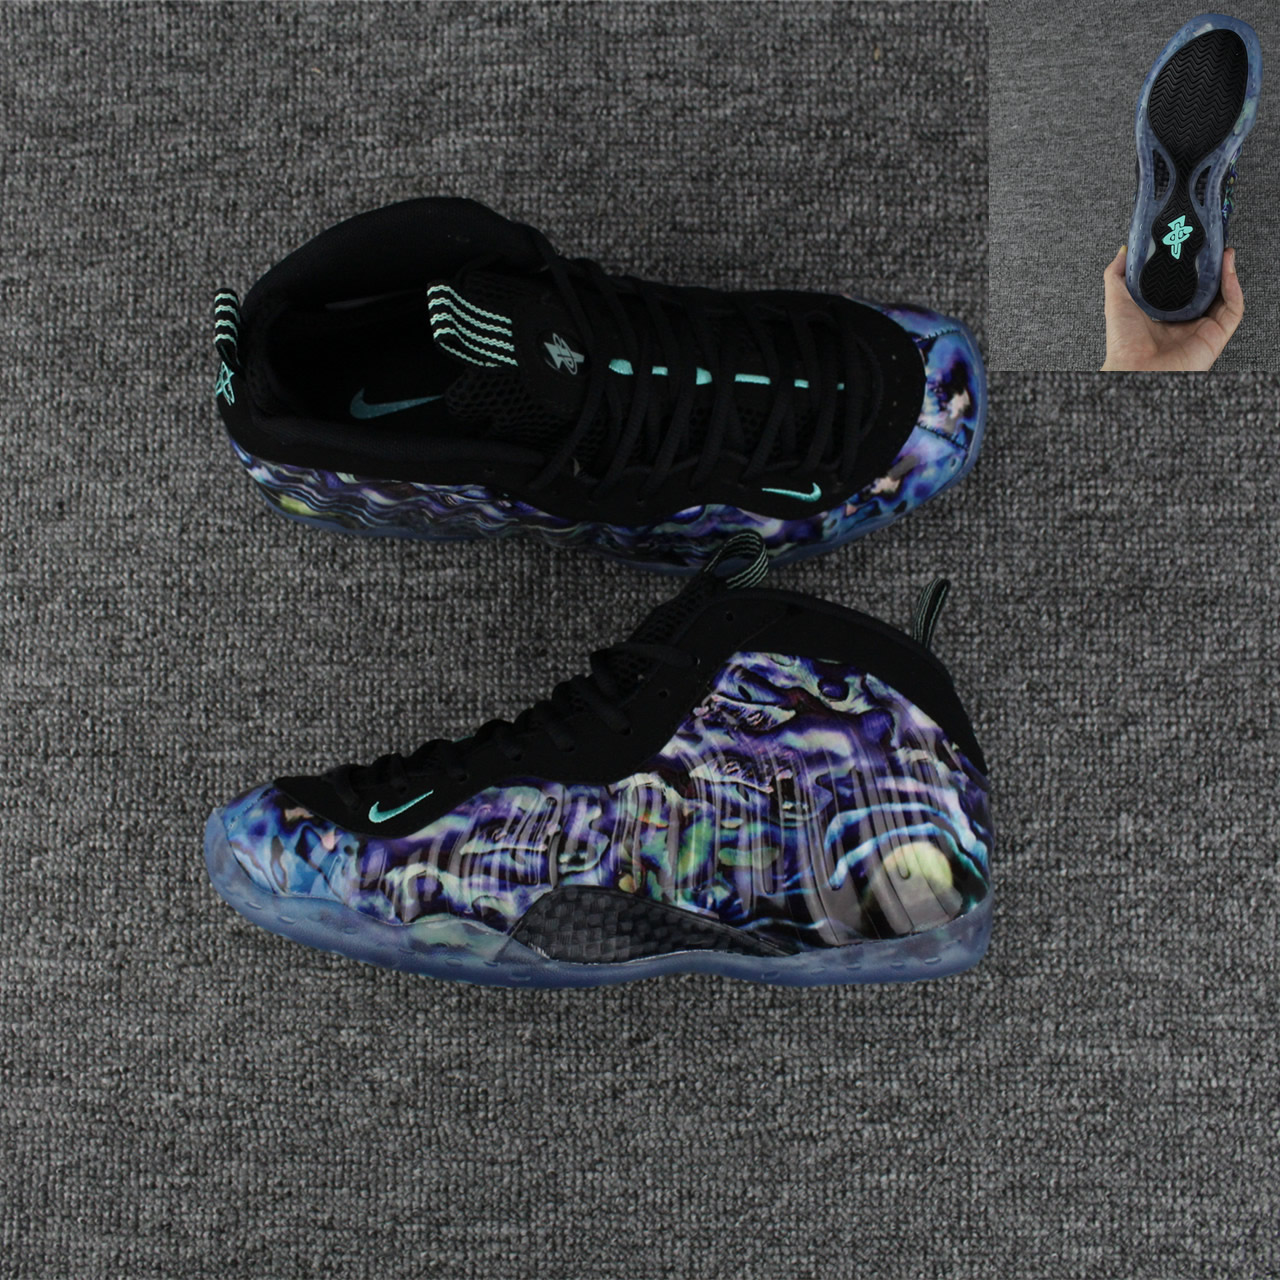 innovative design 76688 c1c76 Nike Air Foamposite One PRM Abalone Mens Nike Foamposites Basketball Shoes  SD71 - Getfashionsstore.